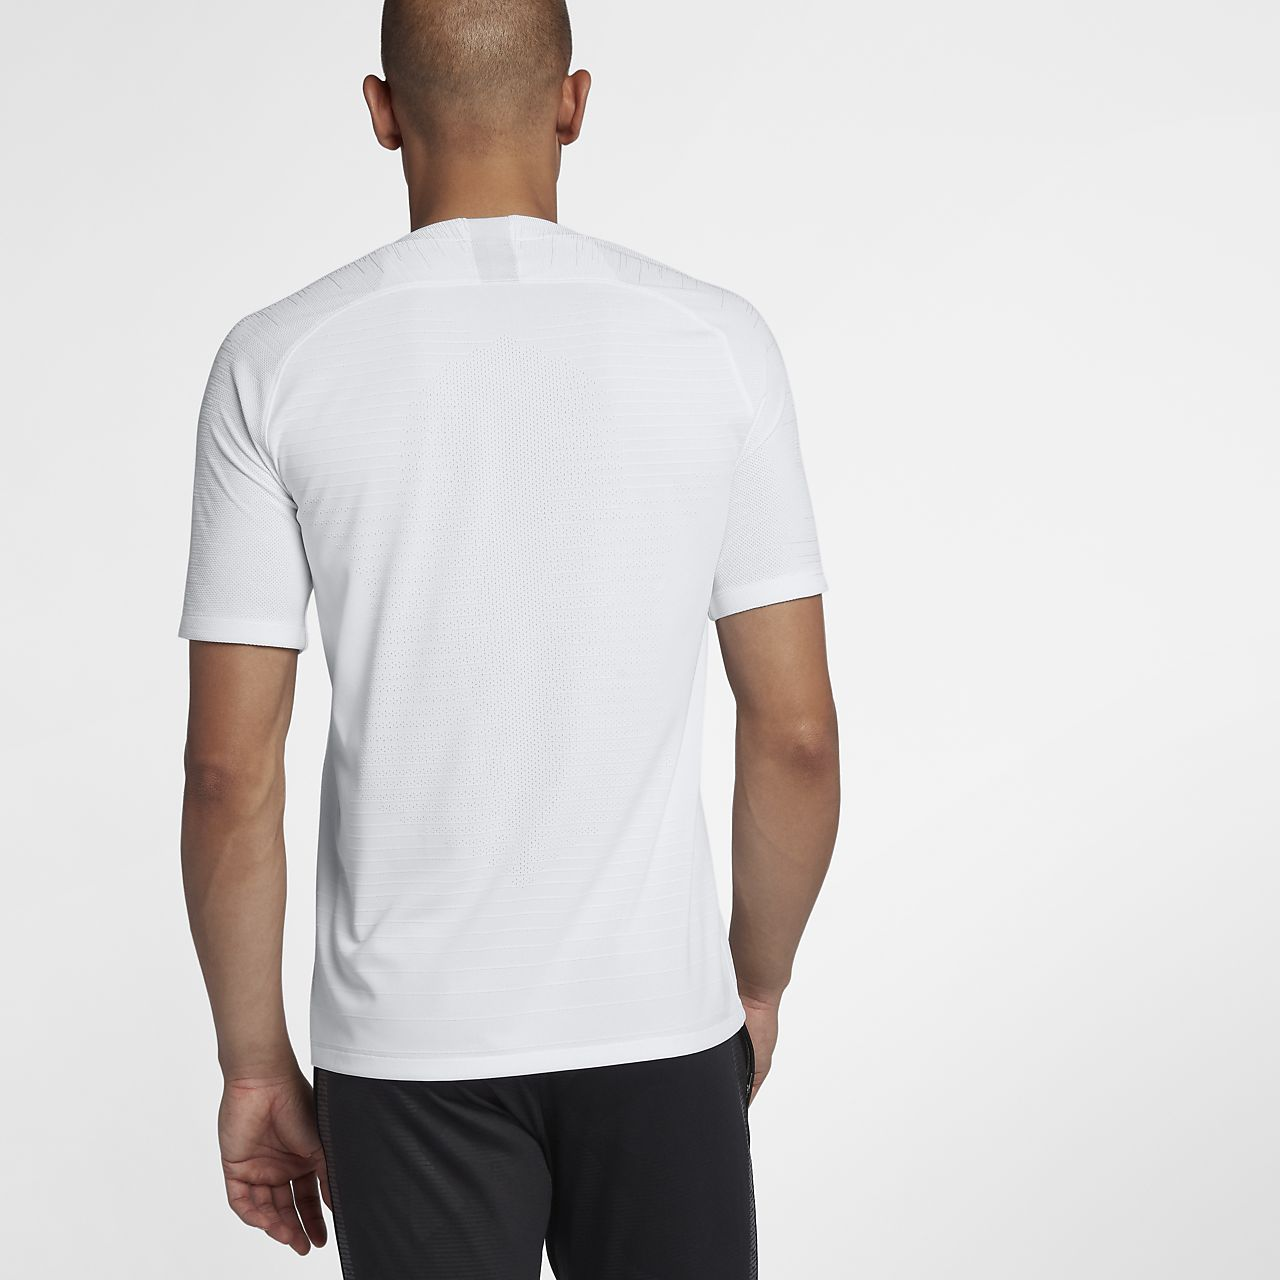 bb5697c69a209 Nike VaporKnit Strike Men s Short-Sleeve Football Top. Nike.com NL